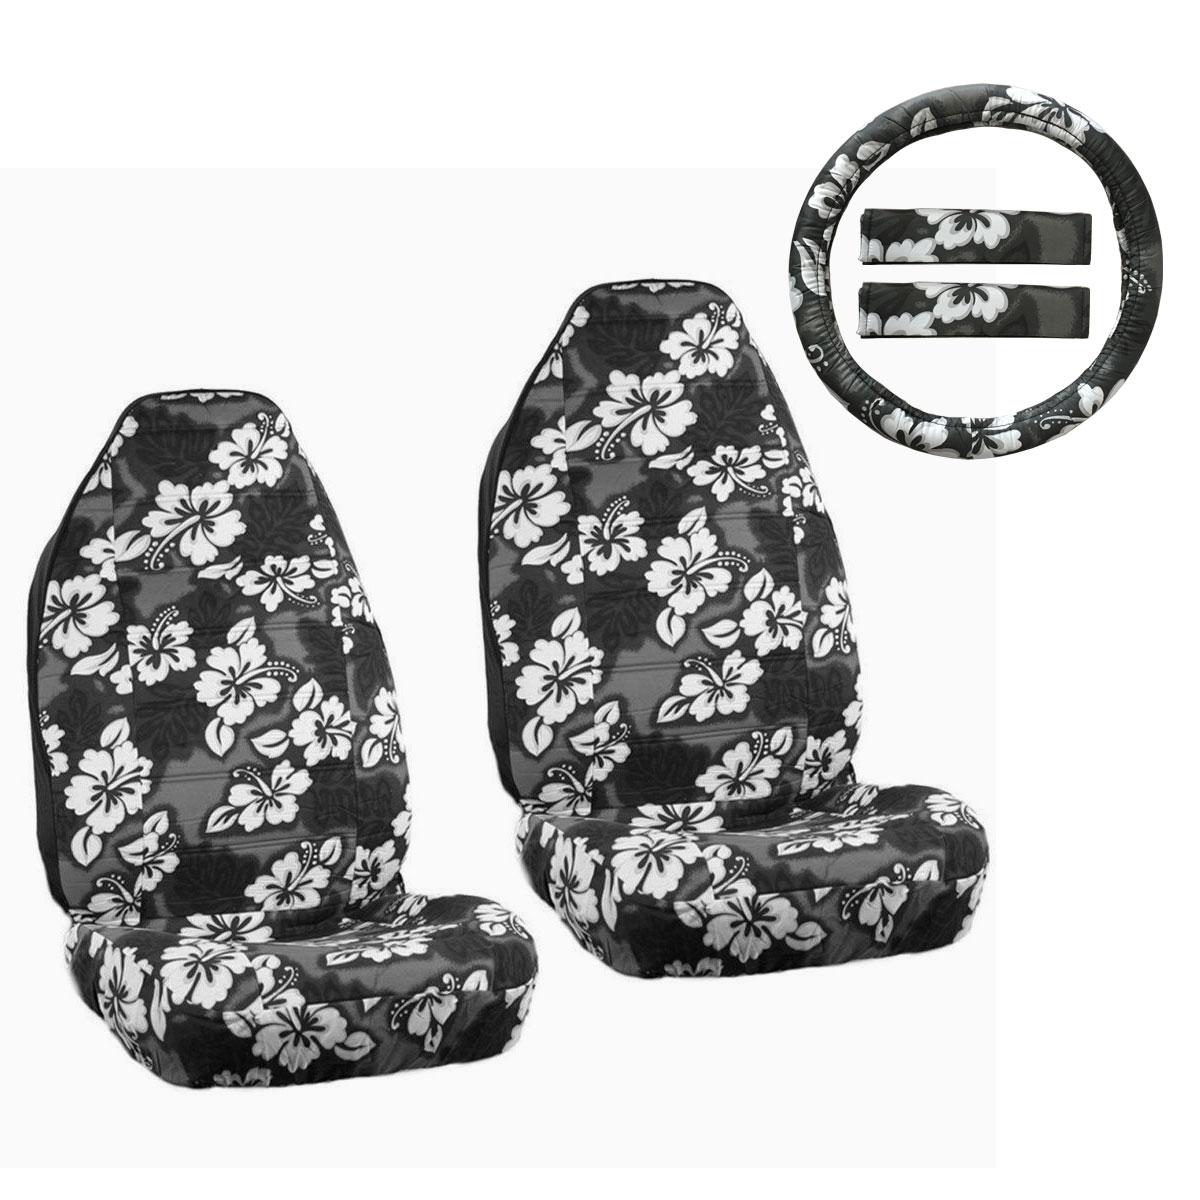 hawaiian chair covers dunelm for arms new black hibiscus floral car front seat steering details about wheel cover